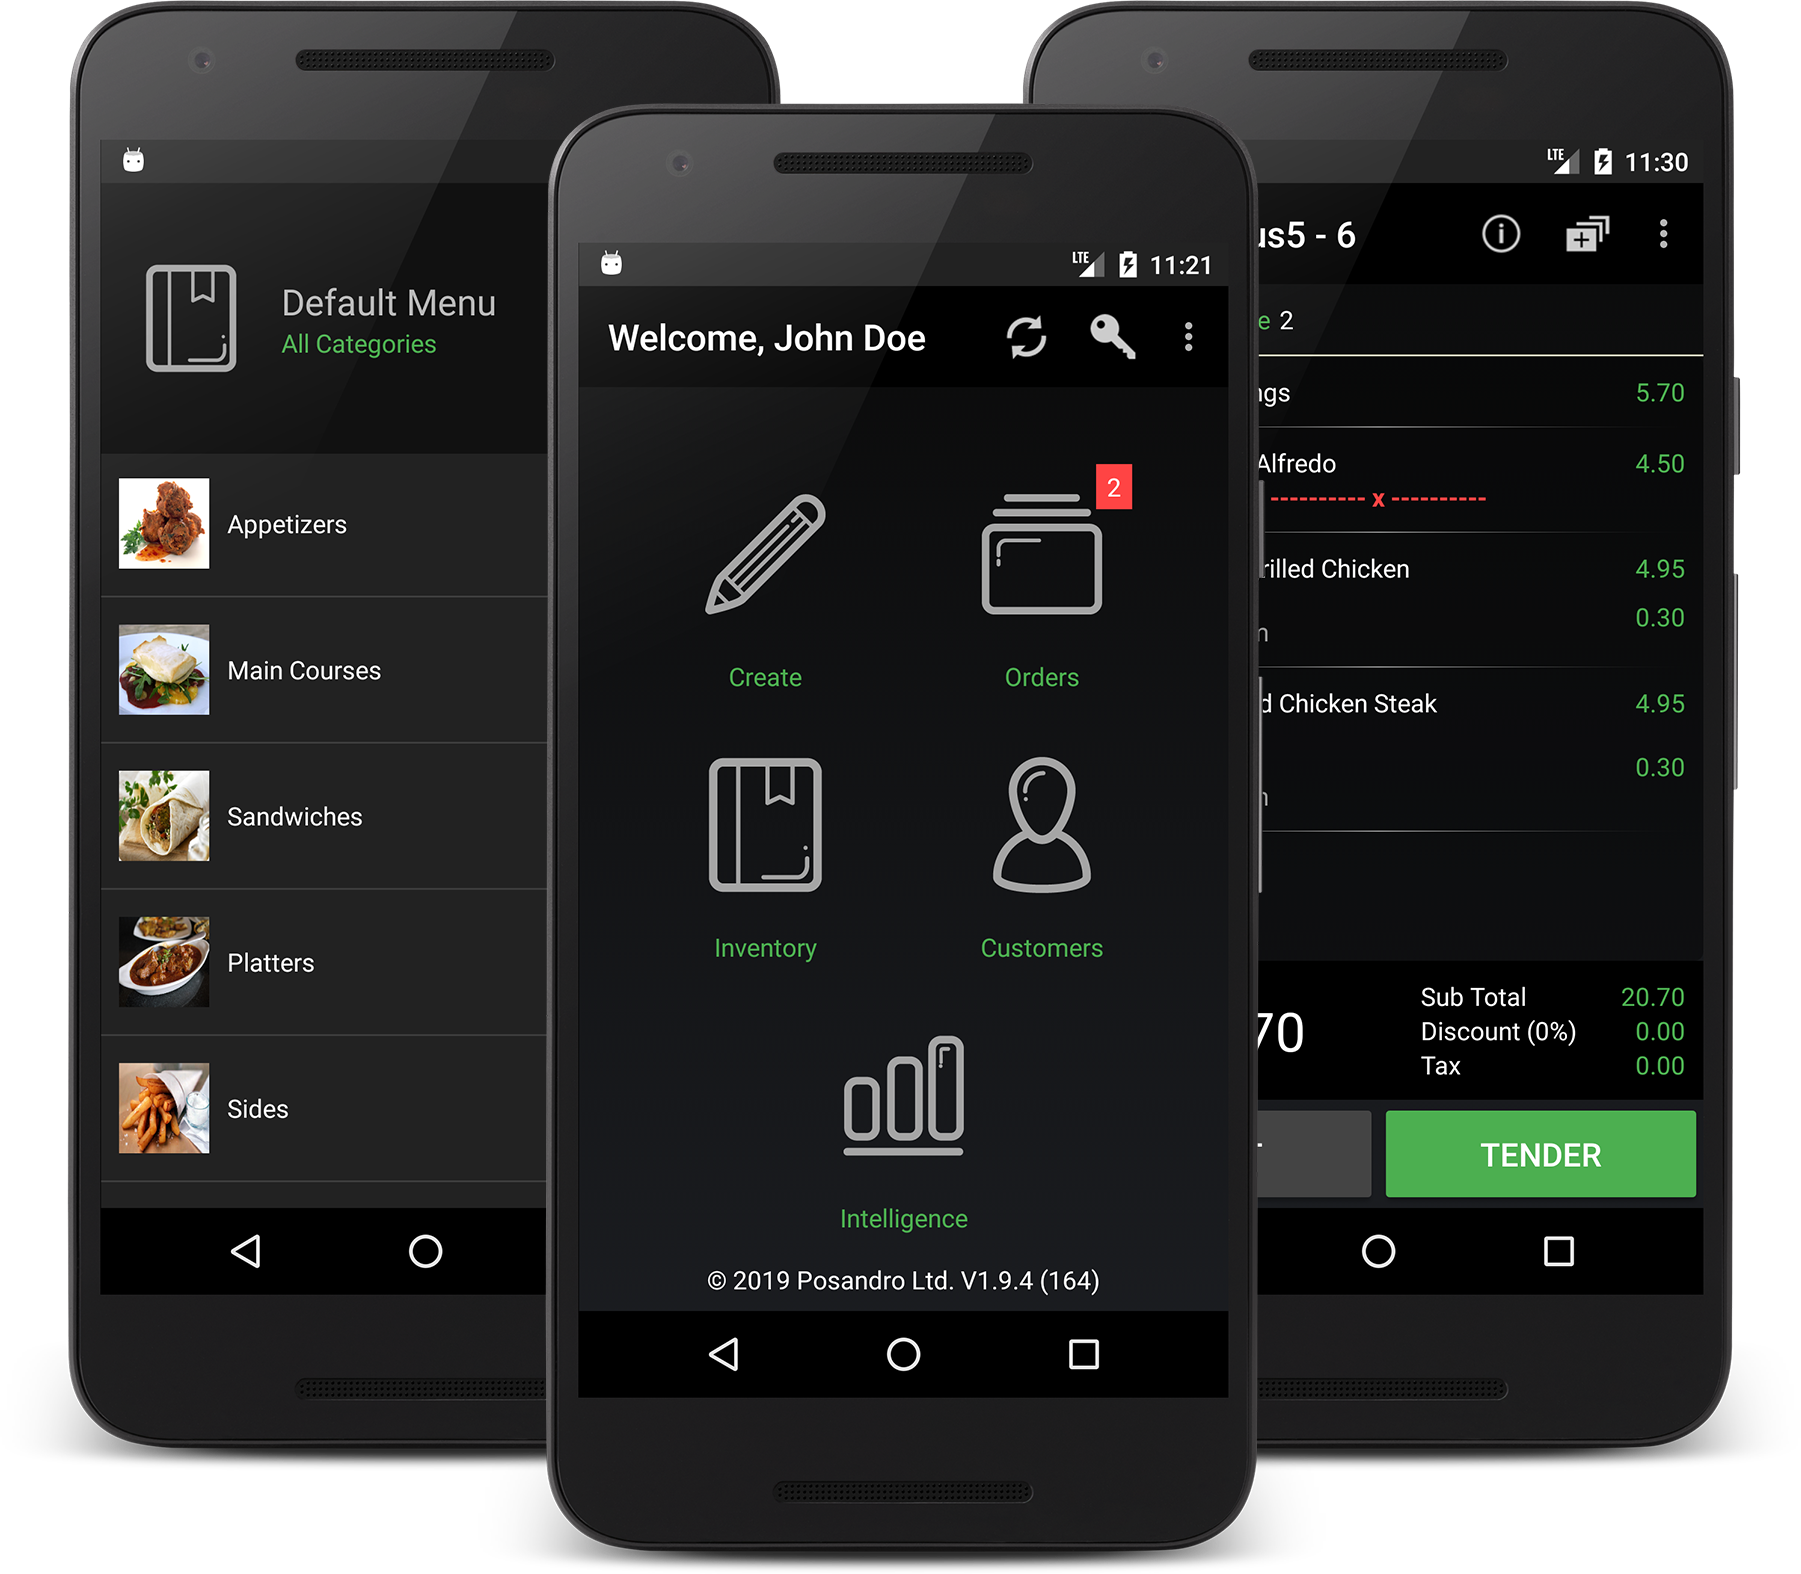 Android Point of Sale | Android ePOS Restaurants, Cafes